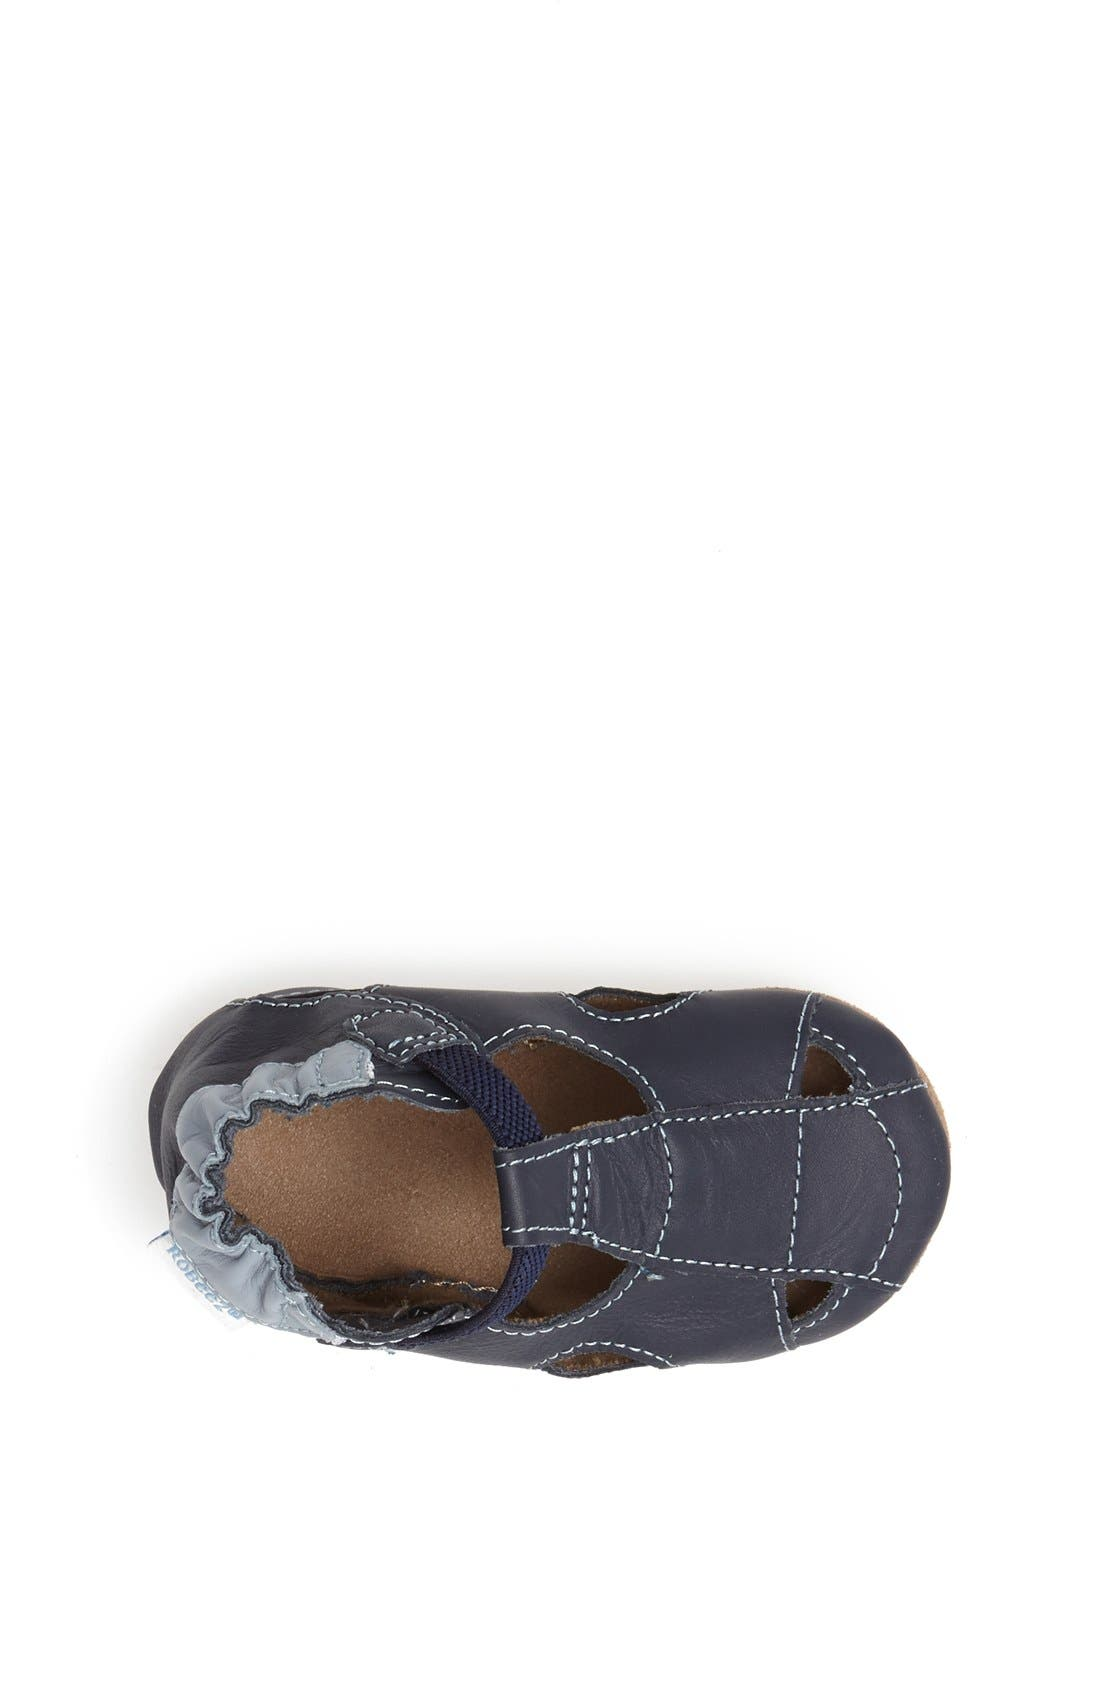 ROBEEZ<SUP>®</SUP>, Fisherman Sandal, Alternate thumbnail 4, color, NAVY